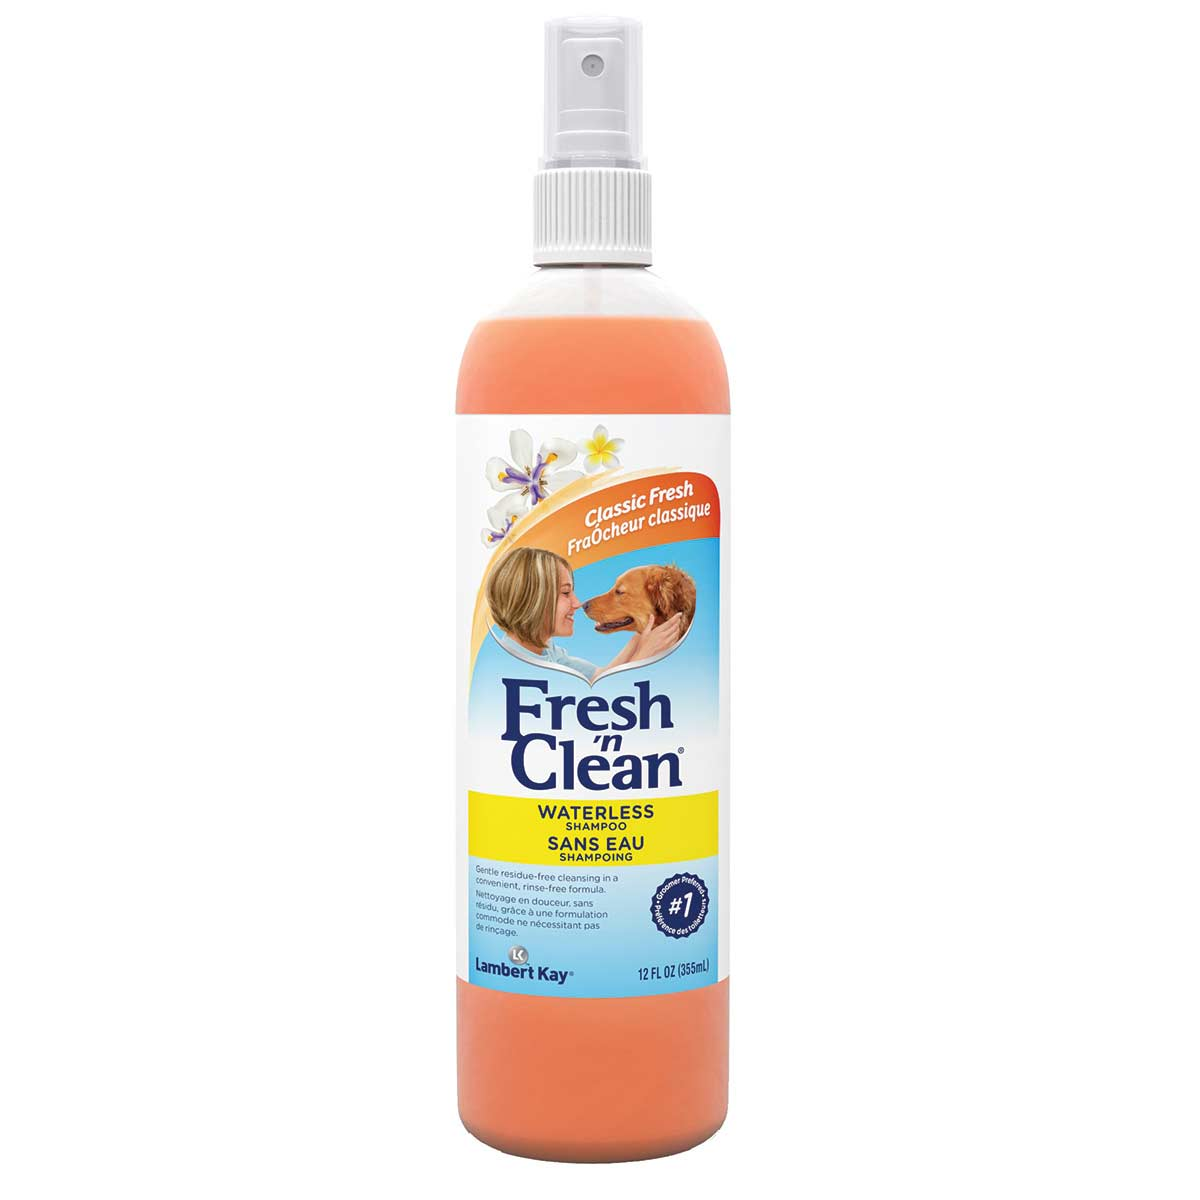 Fresh 'n Clean Waterless Shampoo for Pets available at Ryan's Pet Supplies